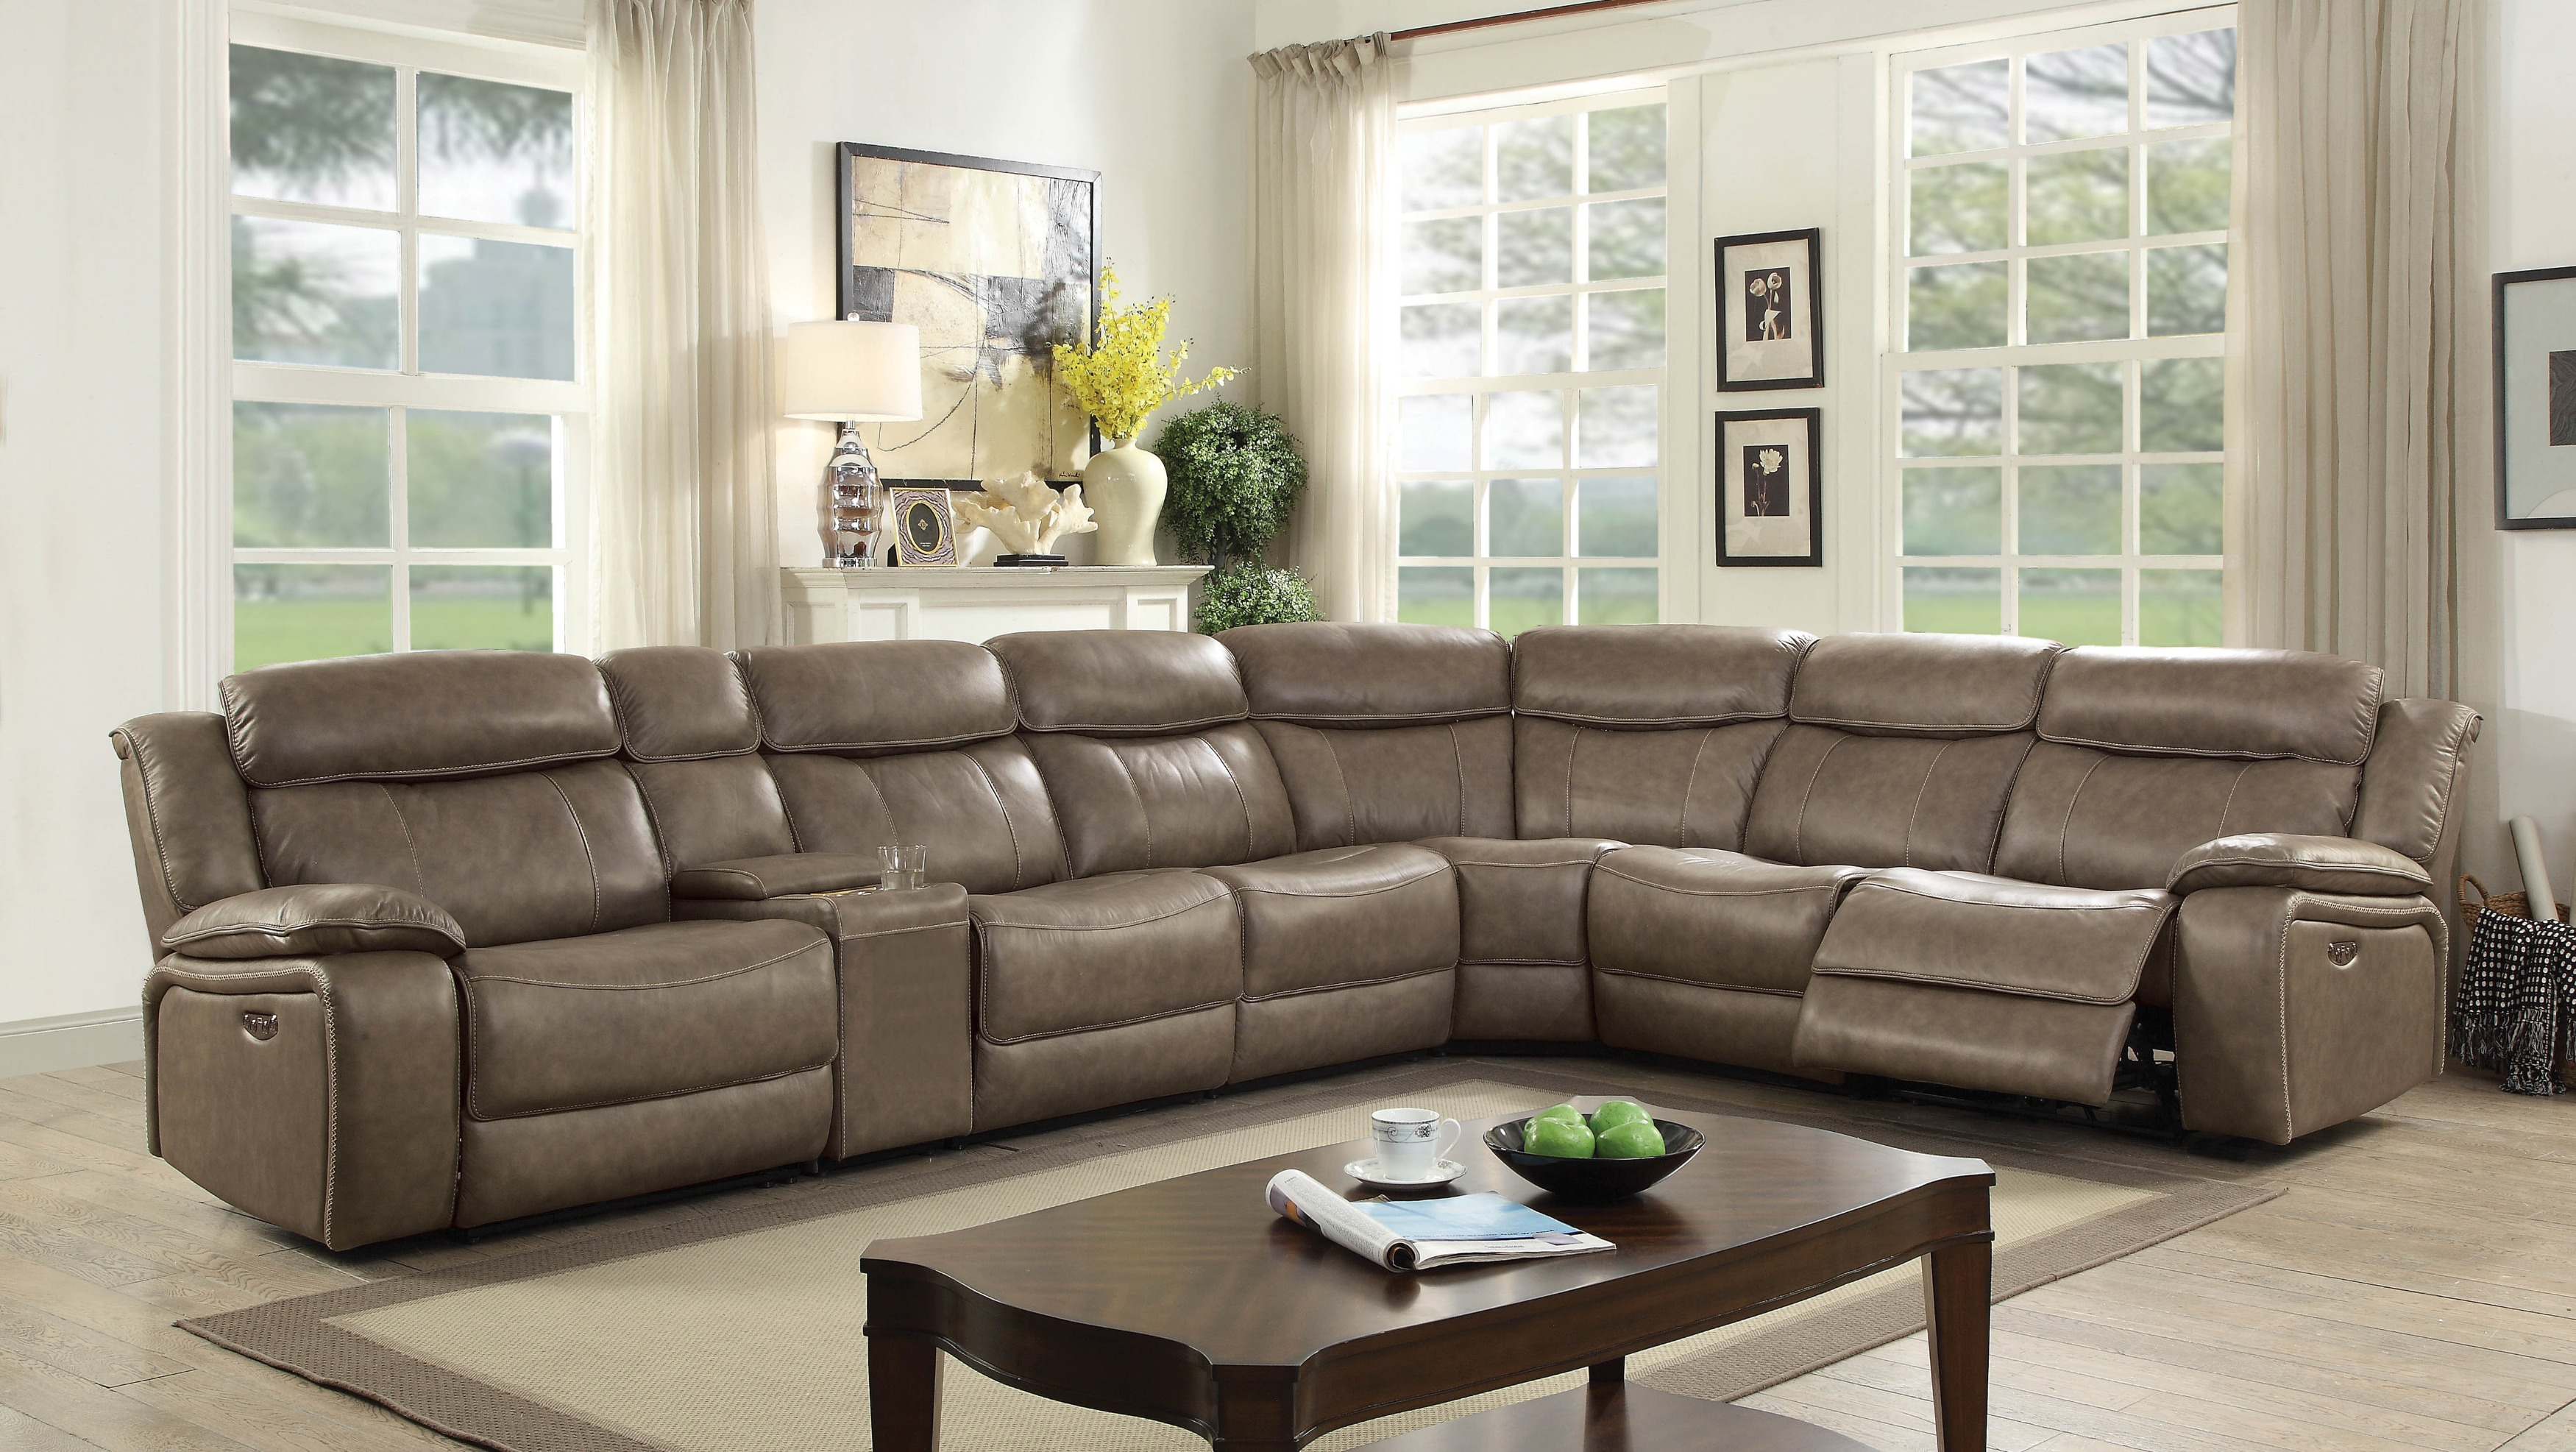 Furniture of America Tuscher Contemporary Gray Leather Recliner Sectional Sofa (Large)